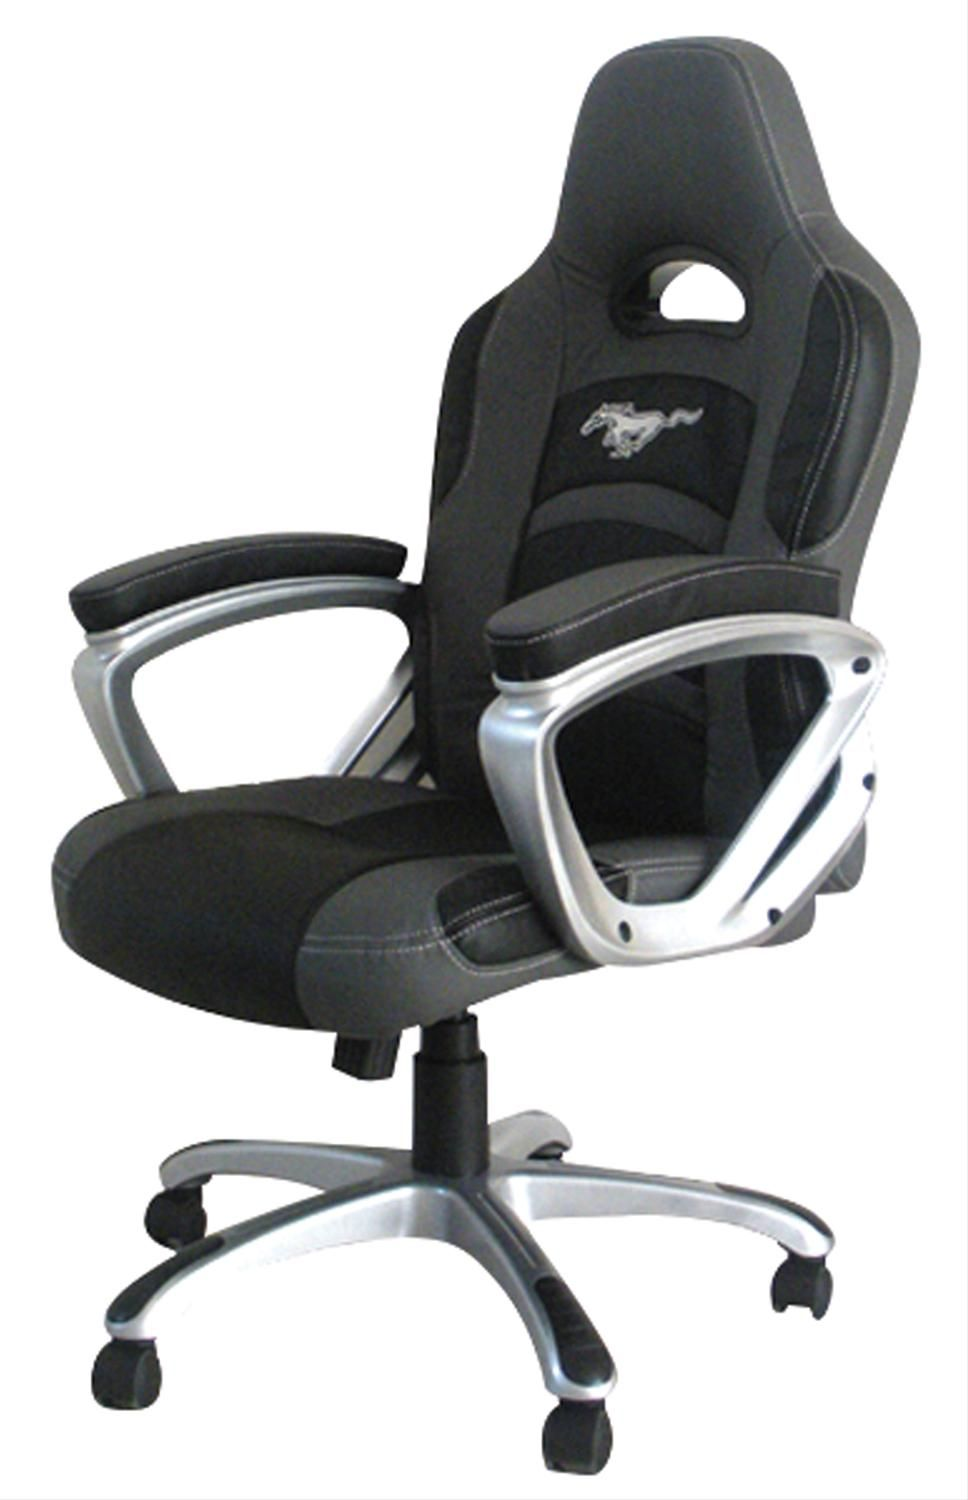 racing office chairs best desk reddit gray black chair with ford mustang emblem free shipping on orders over 99 at genuine hotrod hardware